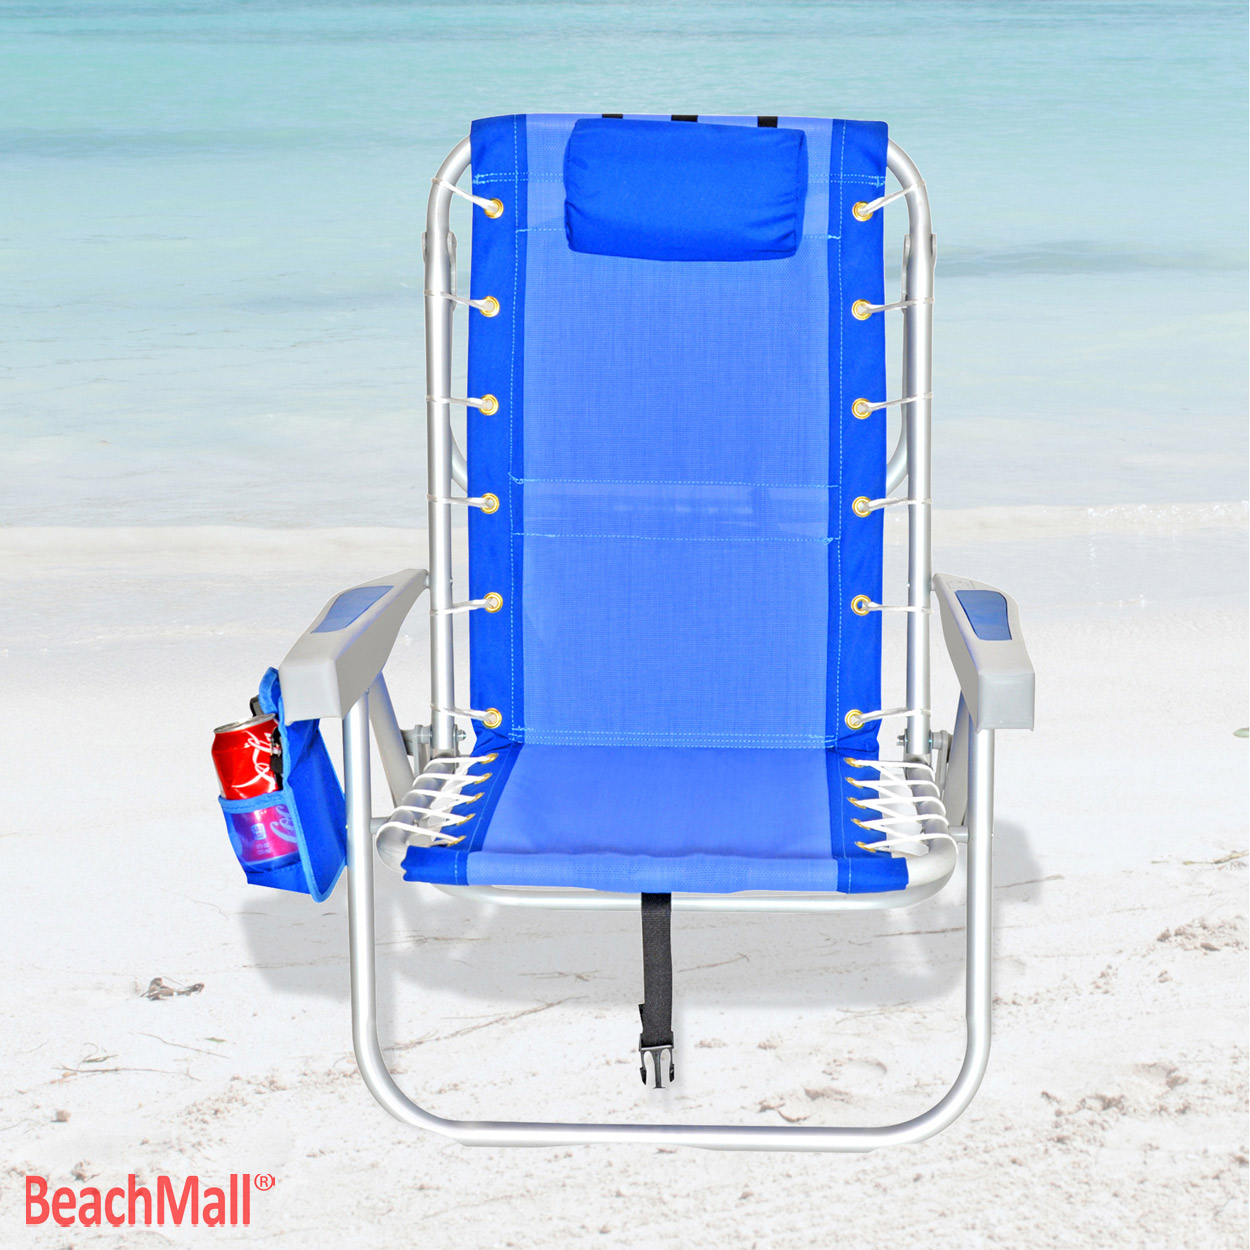 backpack cooler beach chair hay about a aac22 rio 5 pos layflat ultimate w